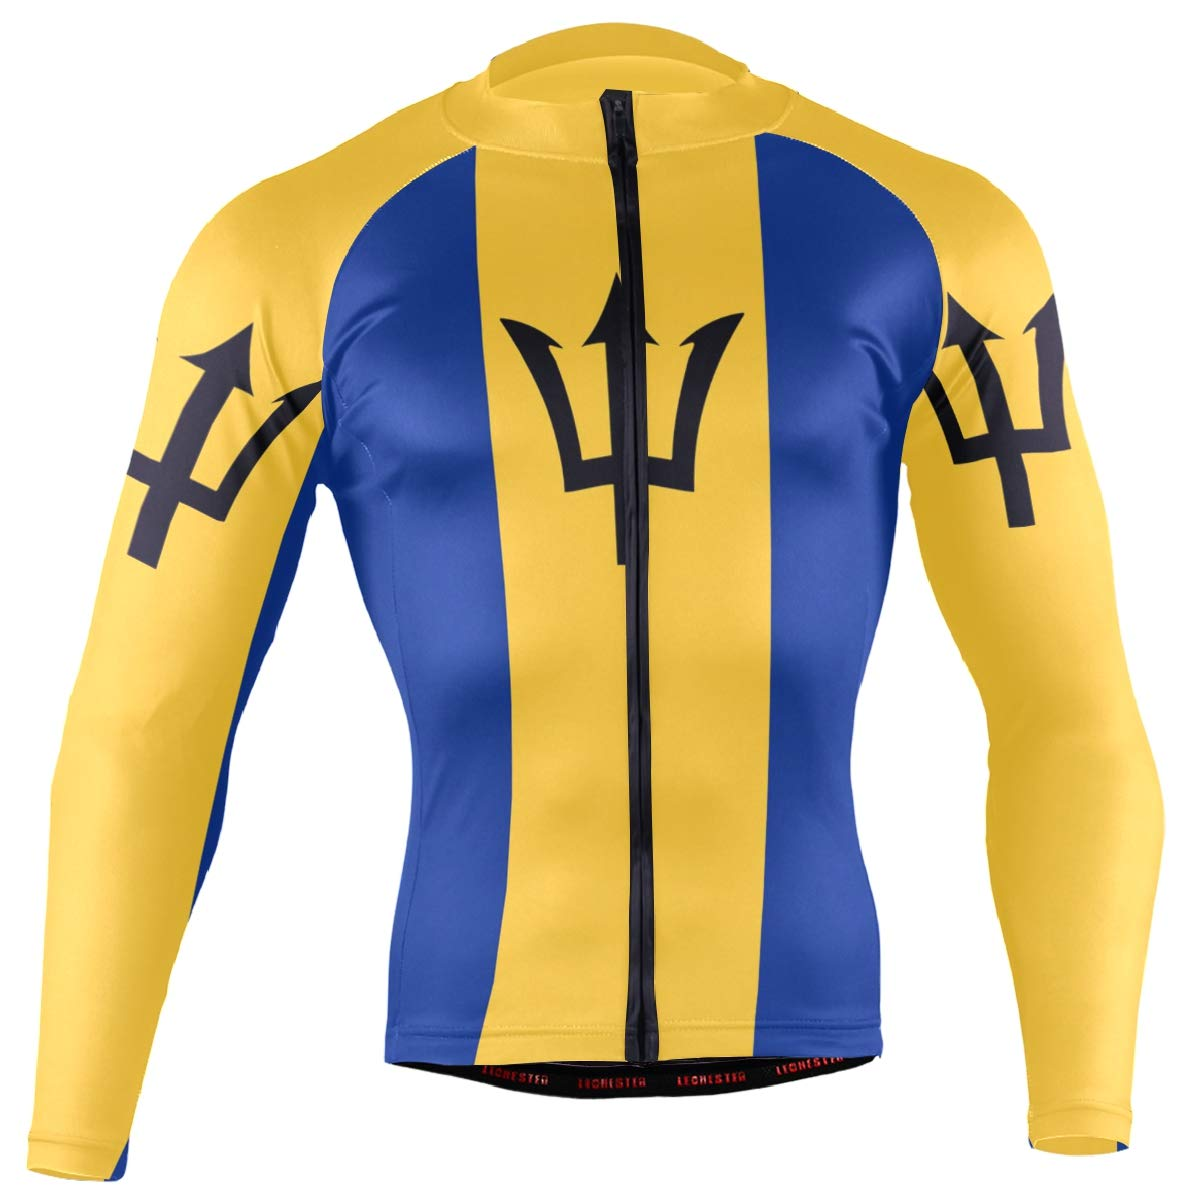 CHINEIN Men's Cycling Jersey Long Sleeve with 3 Rear Pockets Shirt Barbados Flag by CHINEIN